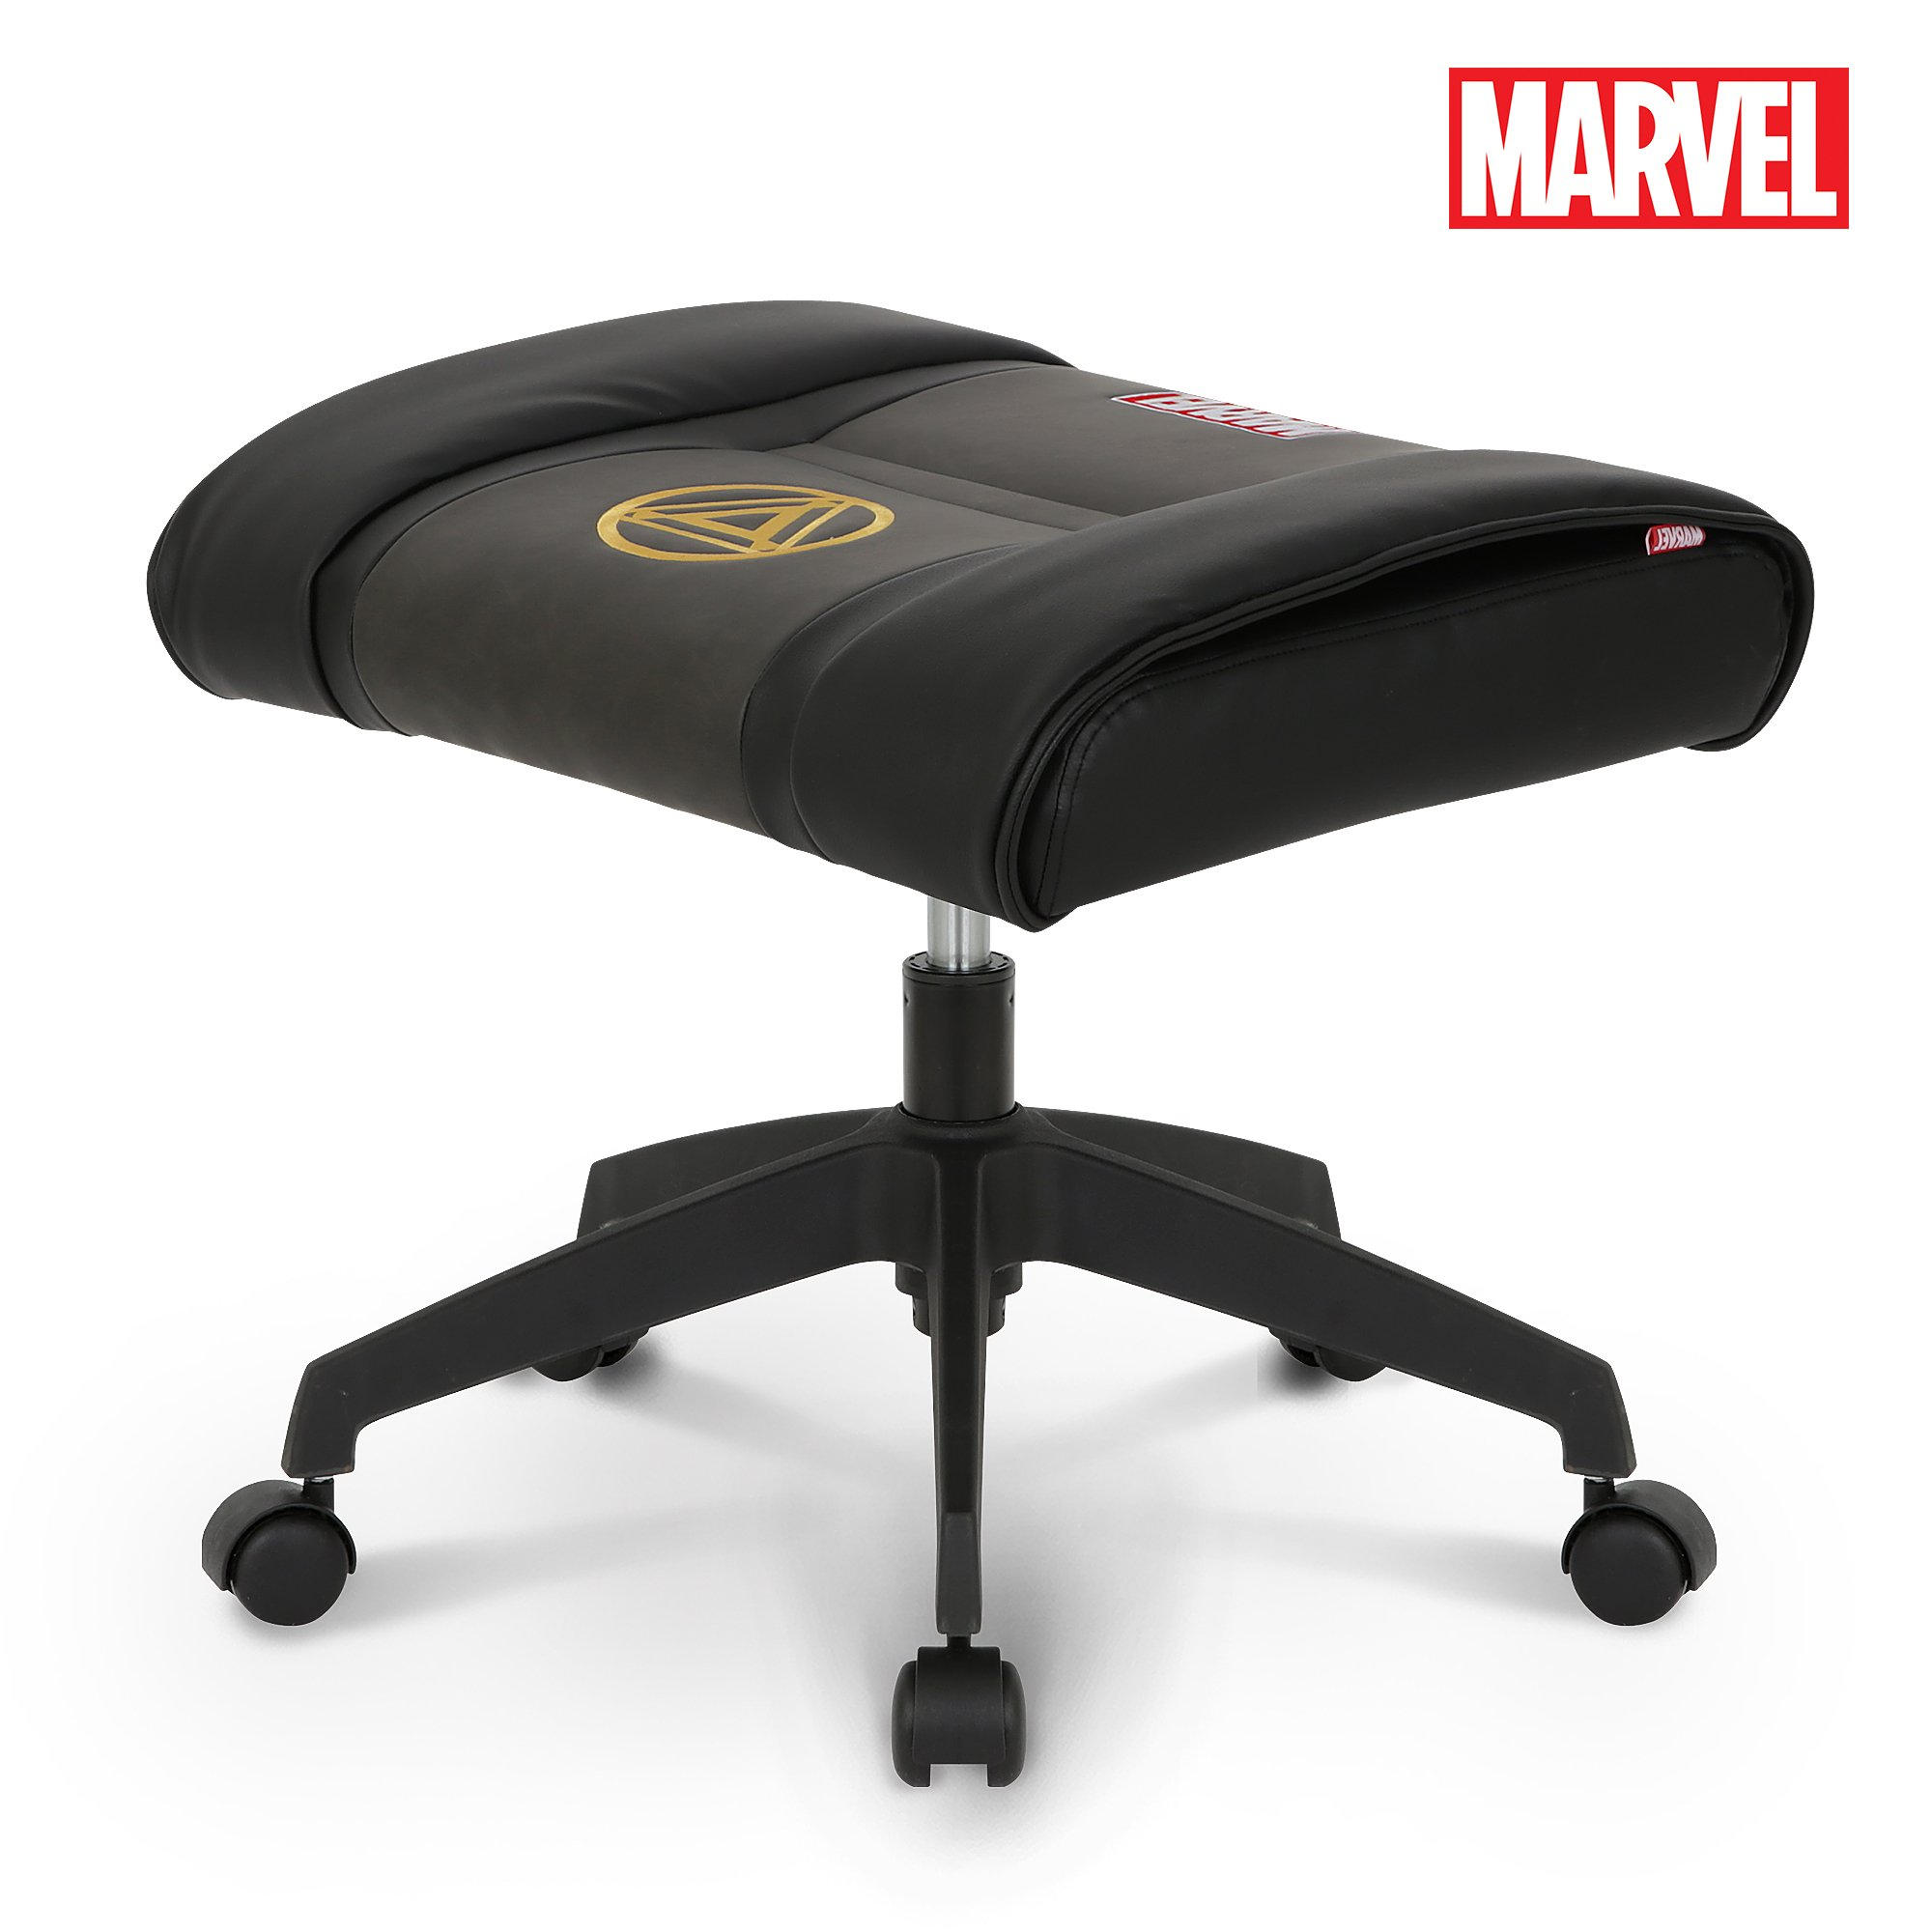 Licensed Marvel Ottoman Foot Rest Seat Stool Makeup Chair w/Wheel : Height Adjustable Office Home Furniture Premium PU Leather, Neo Chair (Iron Man, Black)